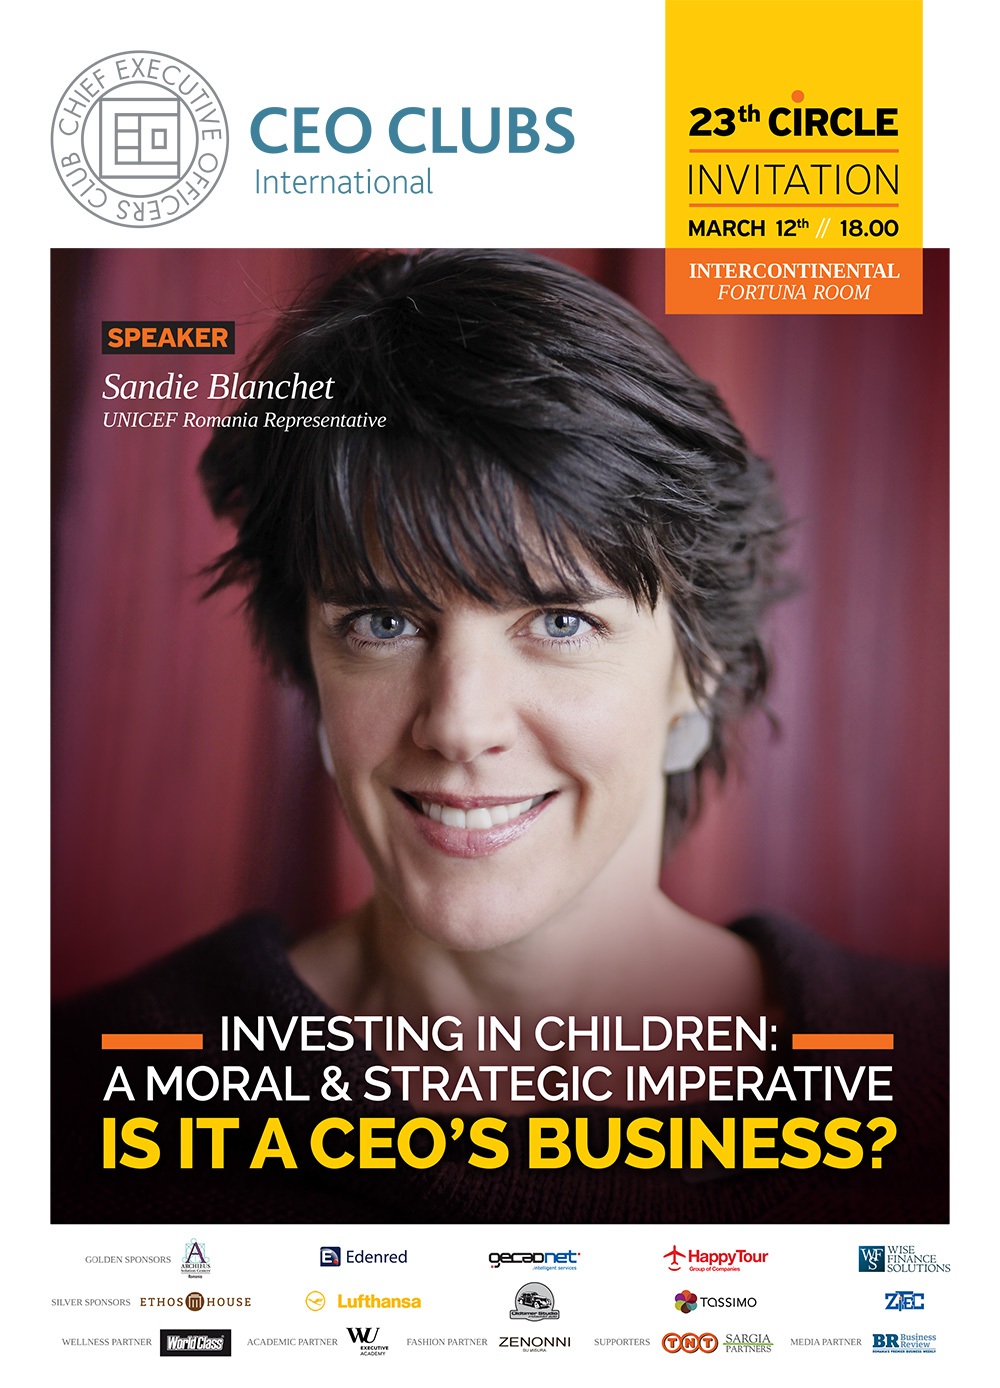 23rd Circle: Investing in Children: A Moral & Strategic Imperative, Is it a CEO's Business?